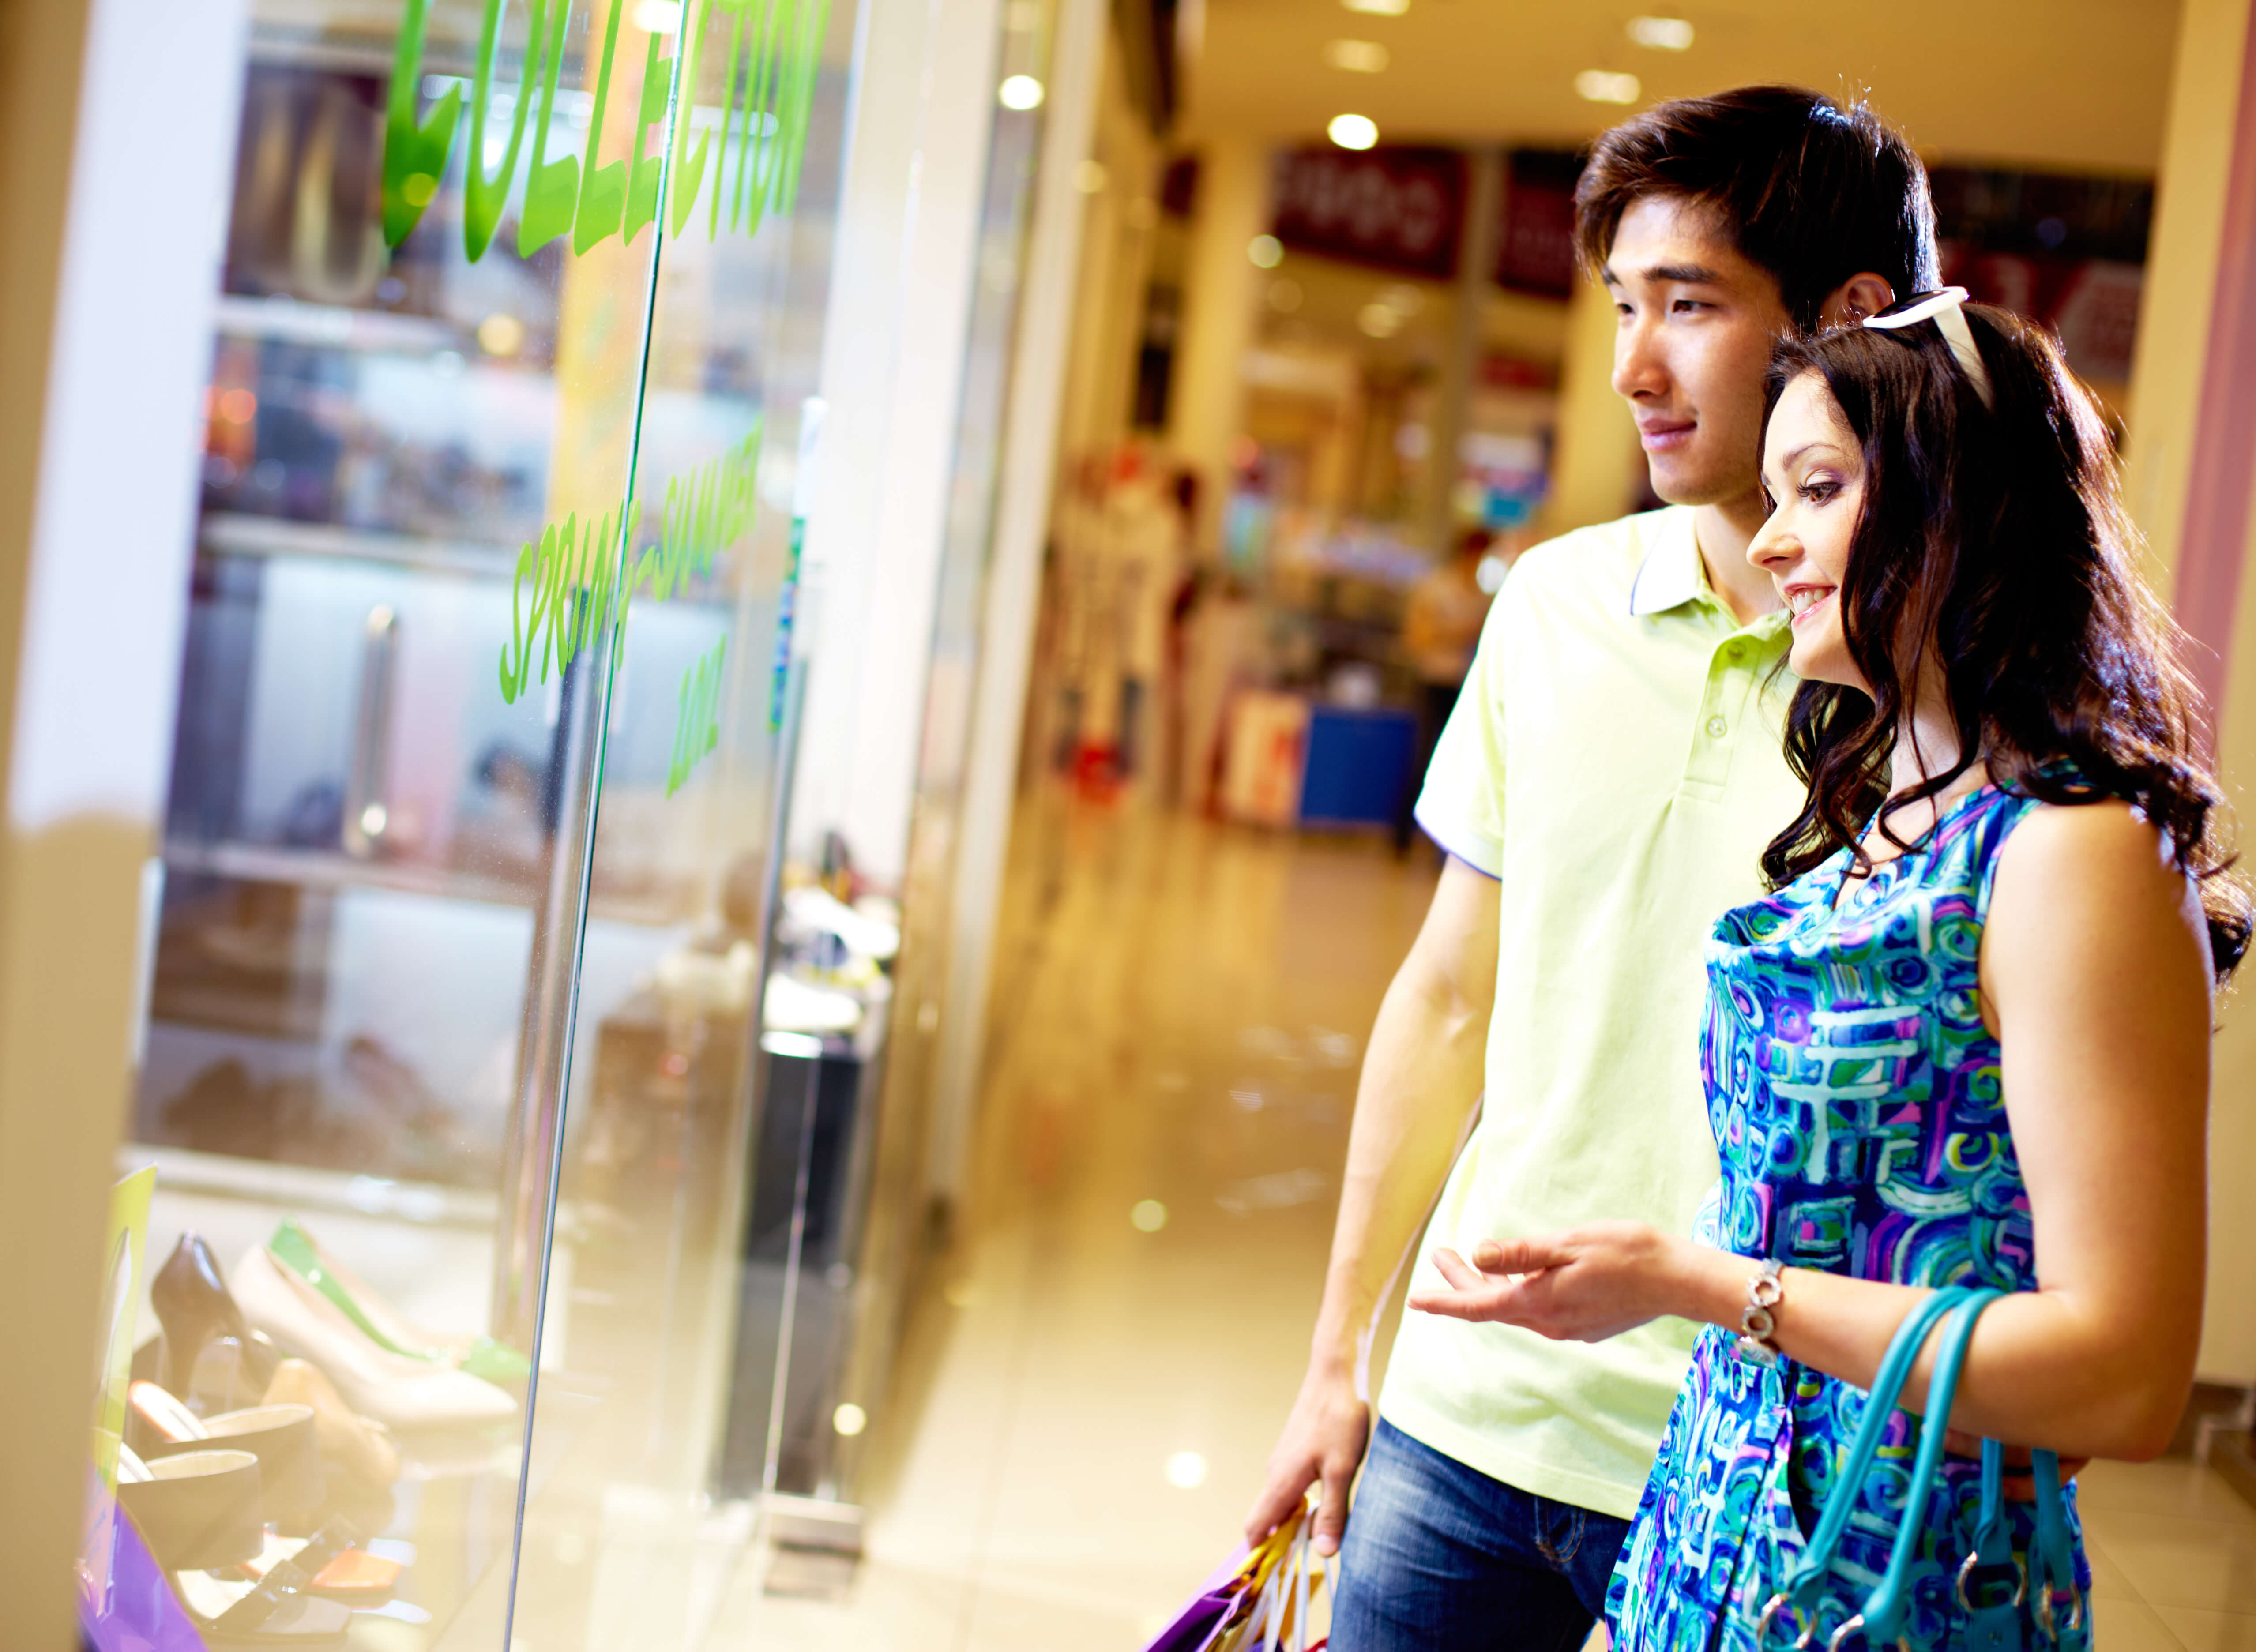 AI is being deployed by both brick-and-mortar businesses, as well as online retailers to tap into its analytics capability to yield data that can help them more enhanced and personalized customer experience. Source: Shutterstock